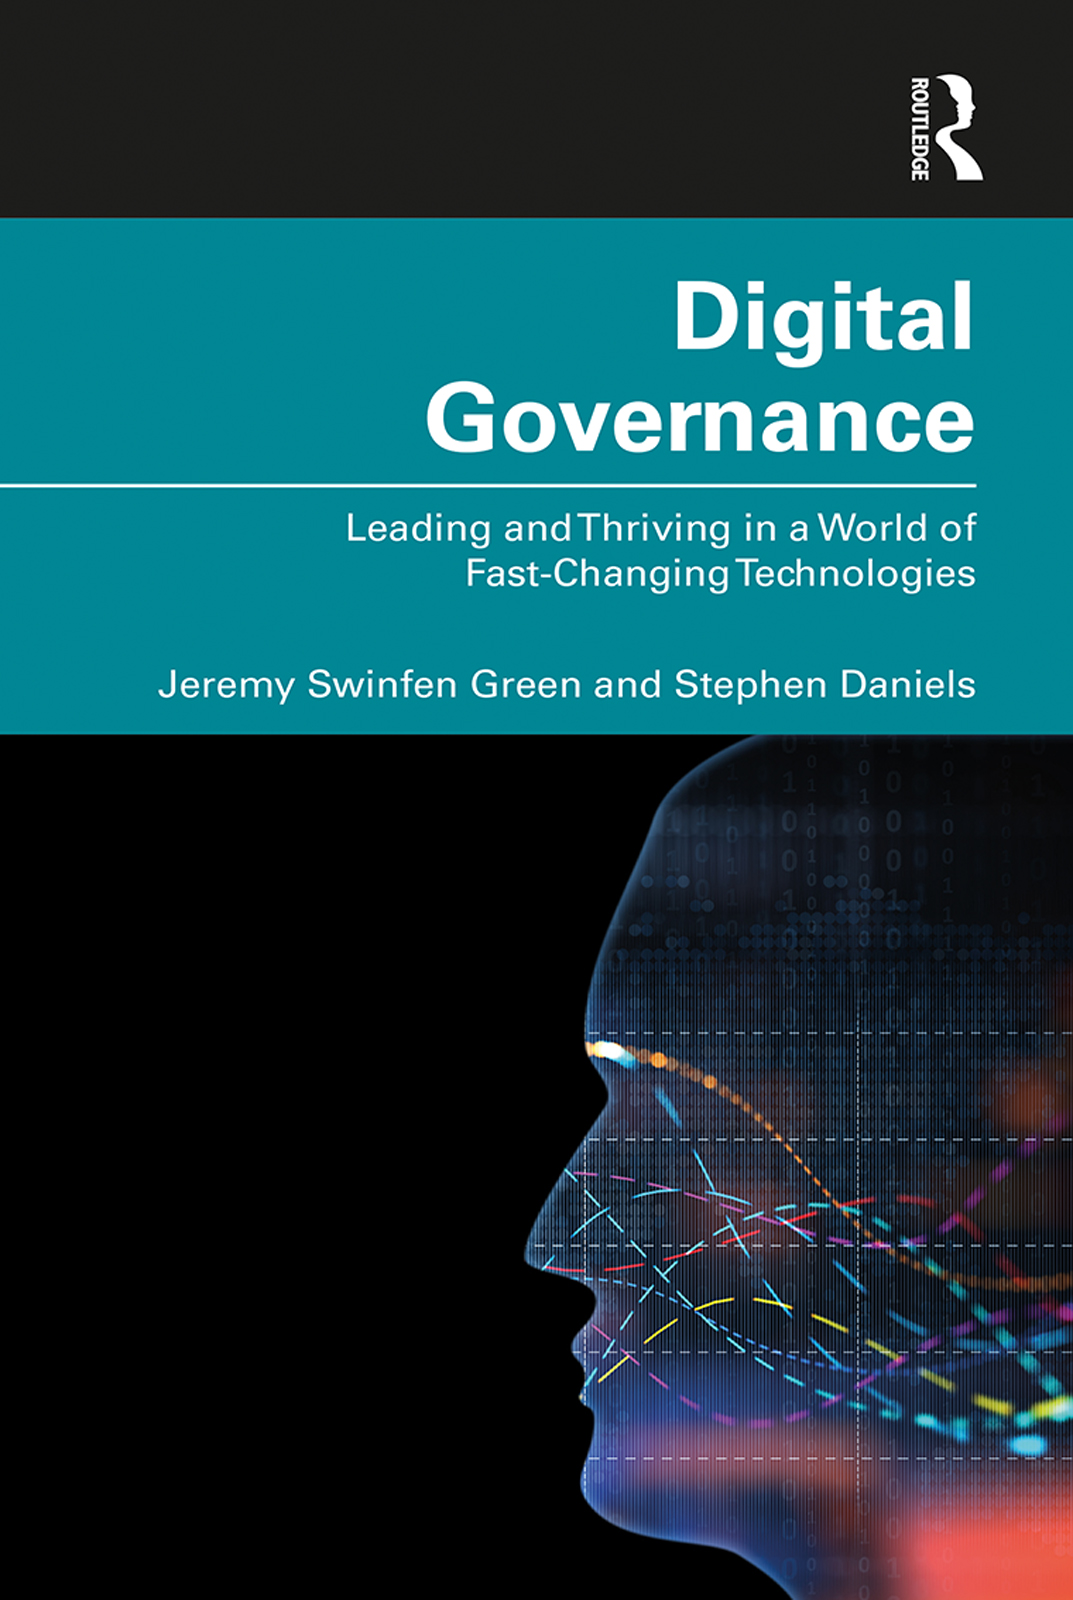 Digital Governance: Leading and Thriving in a World of Fast-Changing Technologies book cover